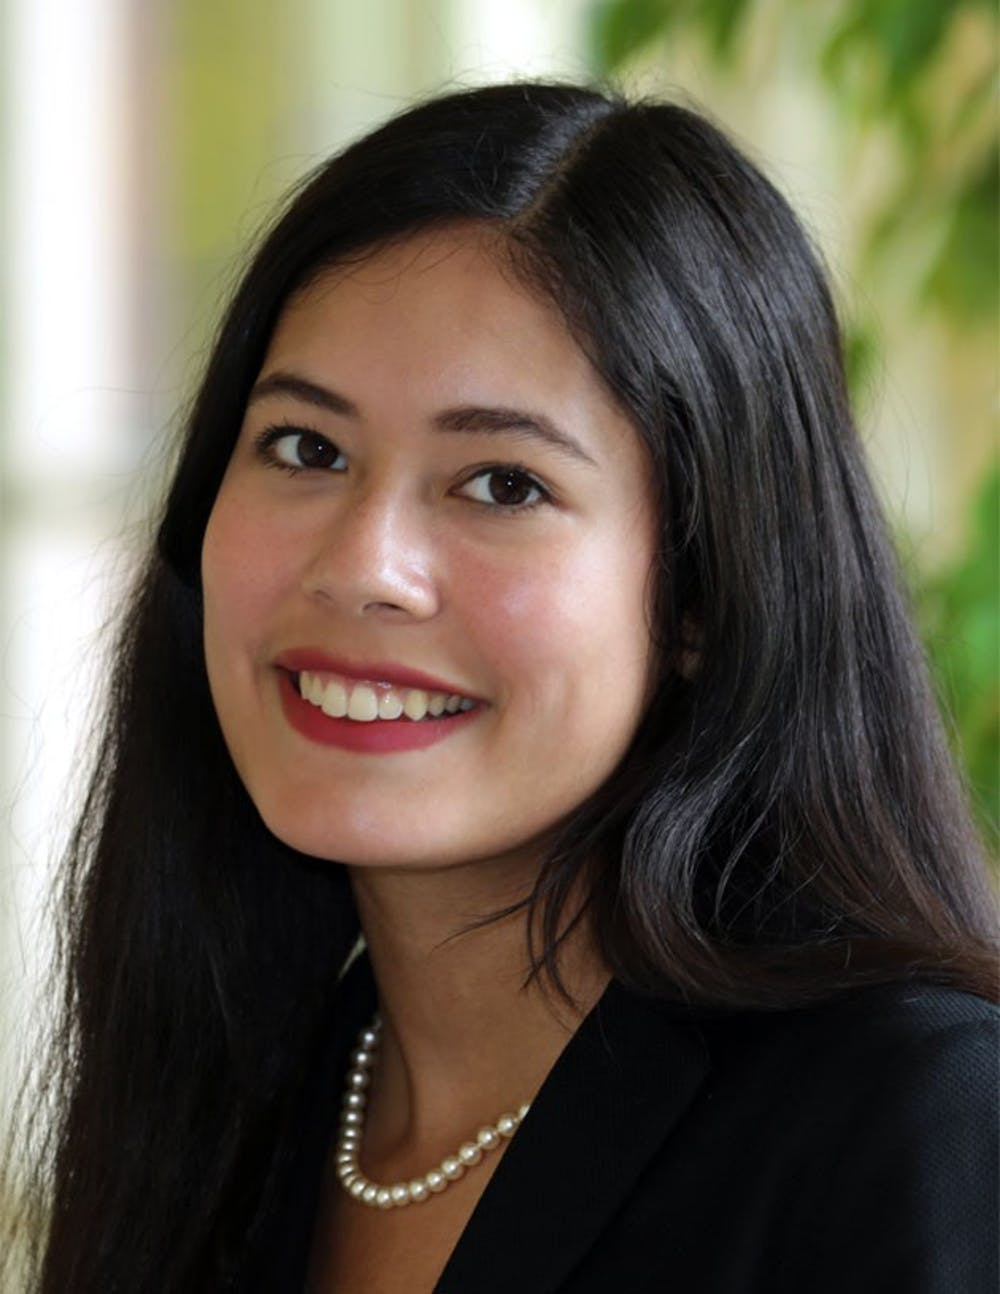 <p>Paloma Ruiz became UNC's 51st recipient of the Goldwater Scholarship based on her cancer research in the Strahl lab. Photo courtesy of Paloma Ruiz.</p>